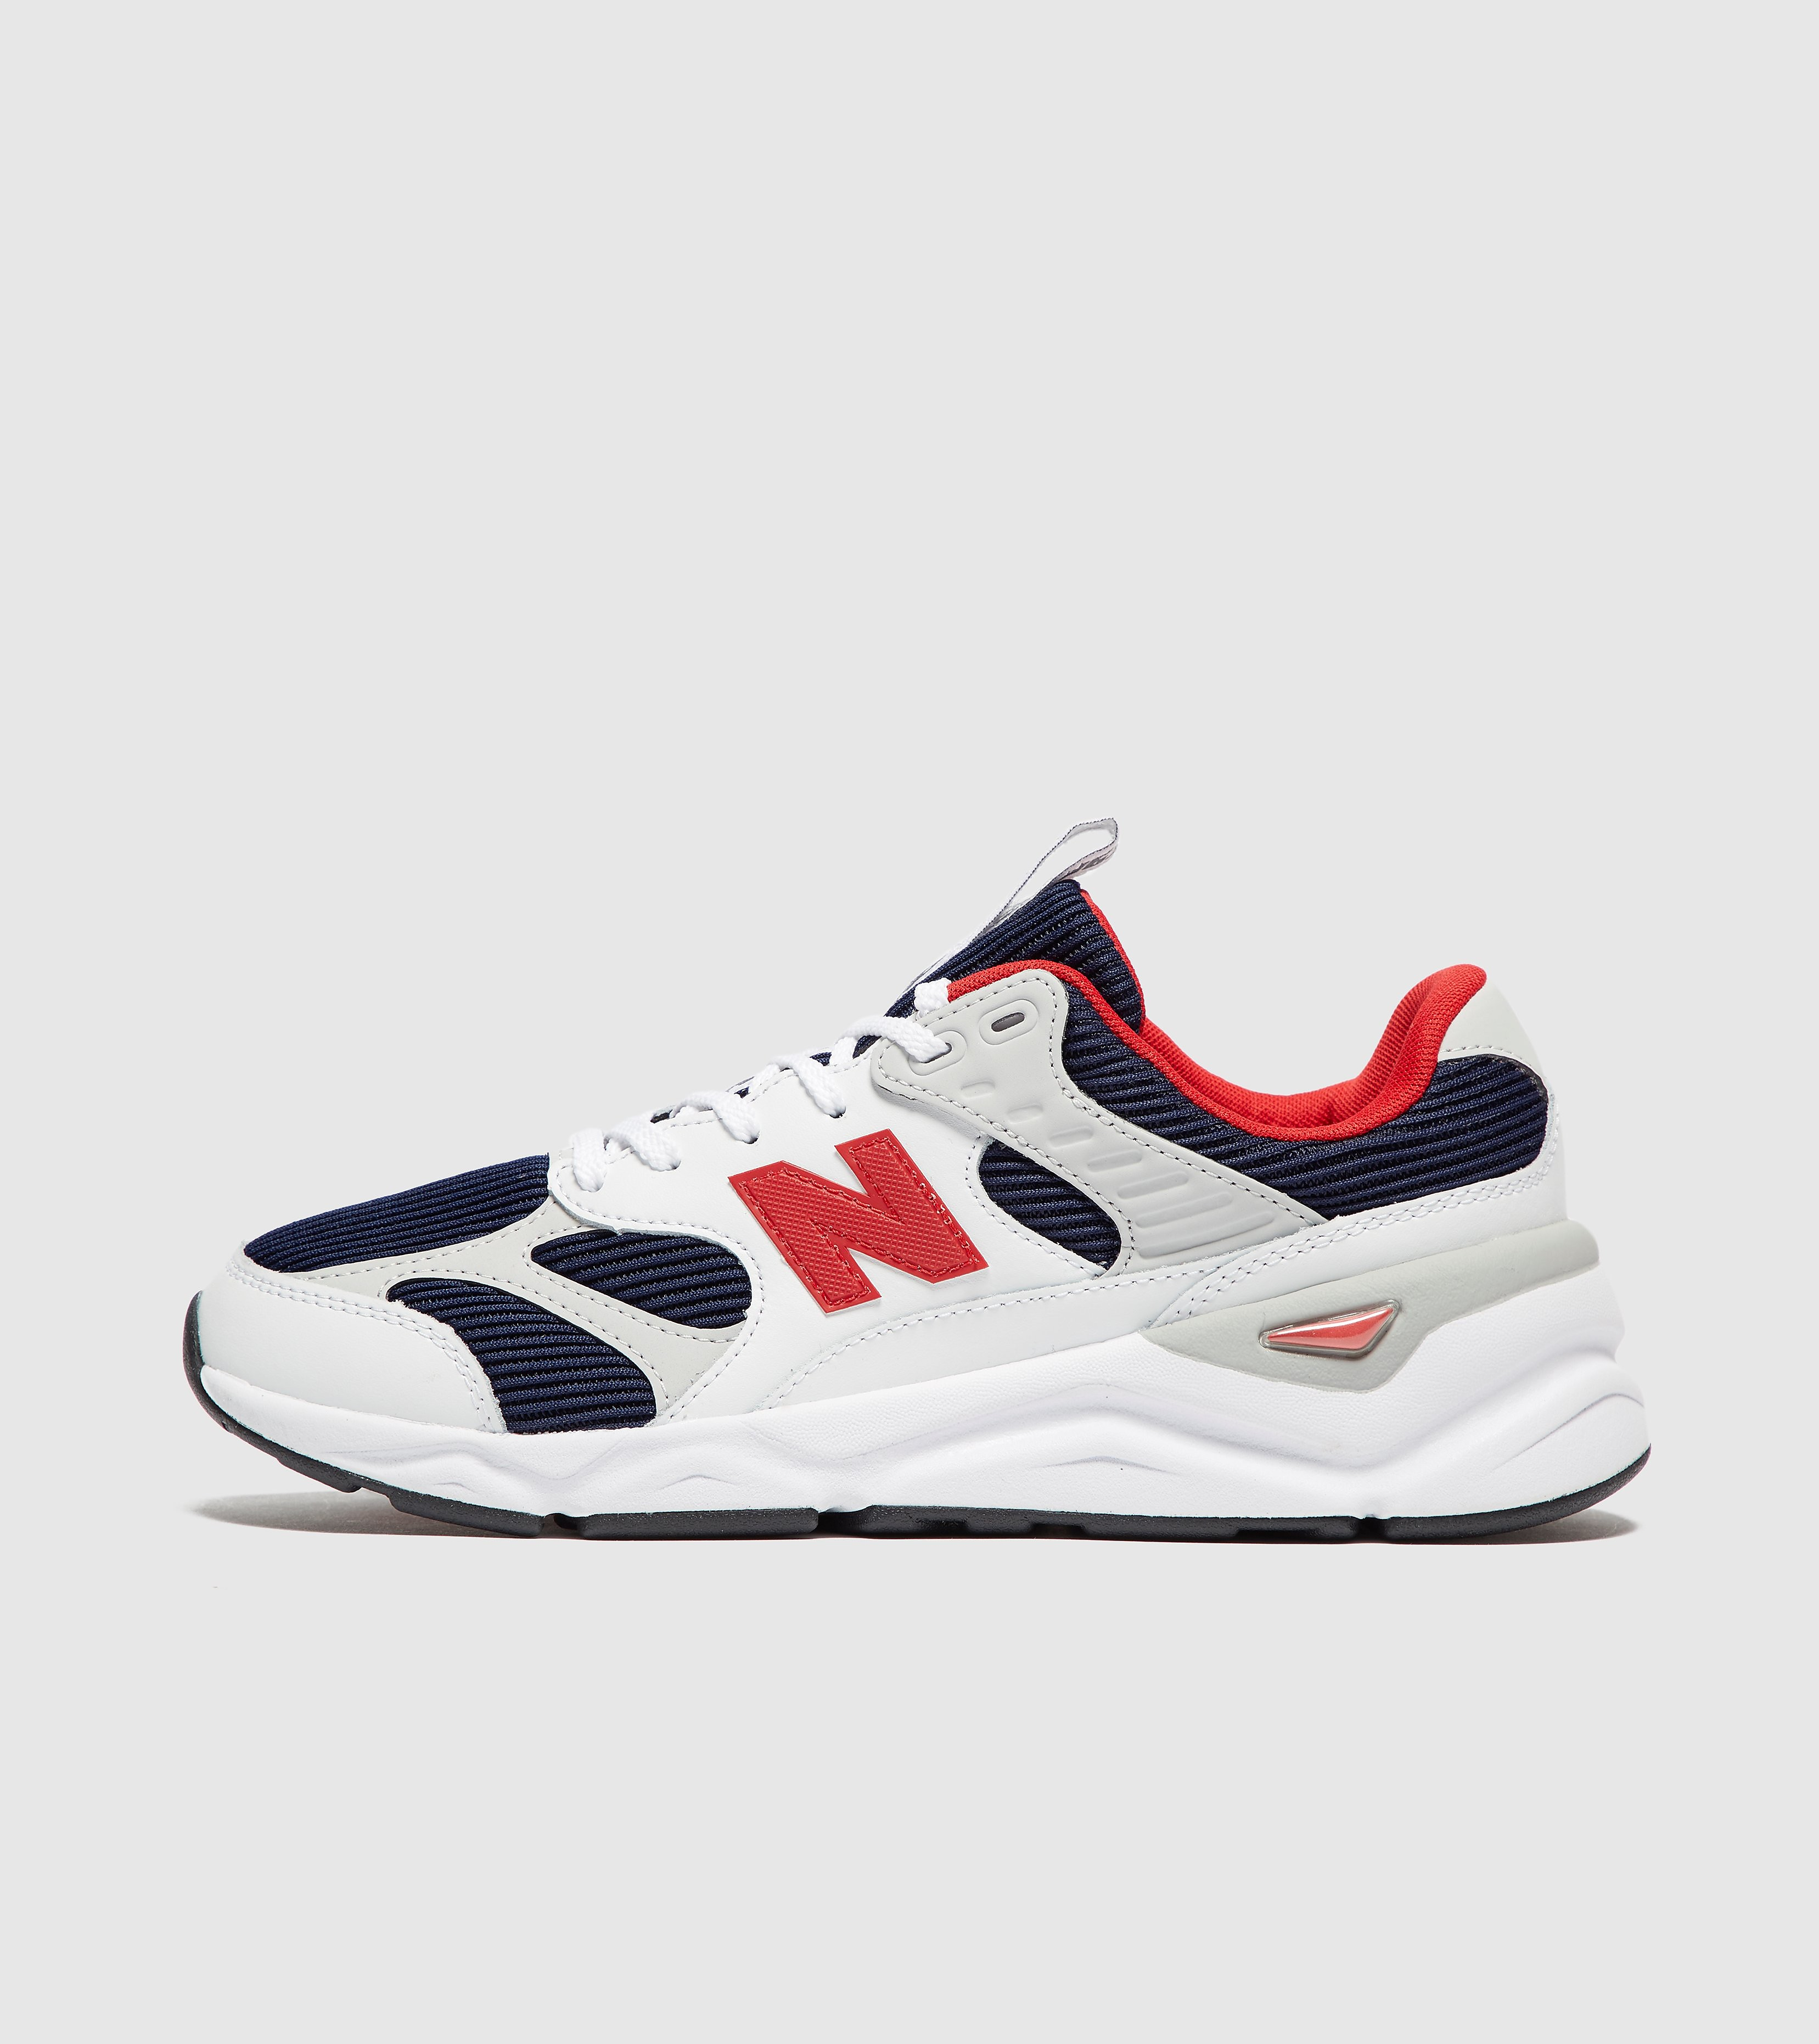 de9641f41b6 New Balance - Shop The Latest Collections at London Trend